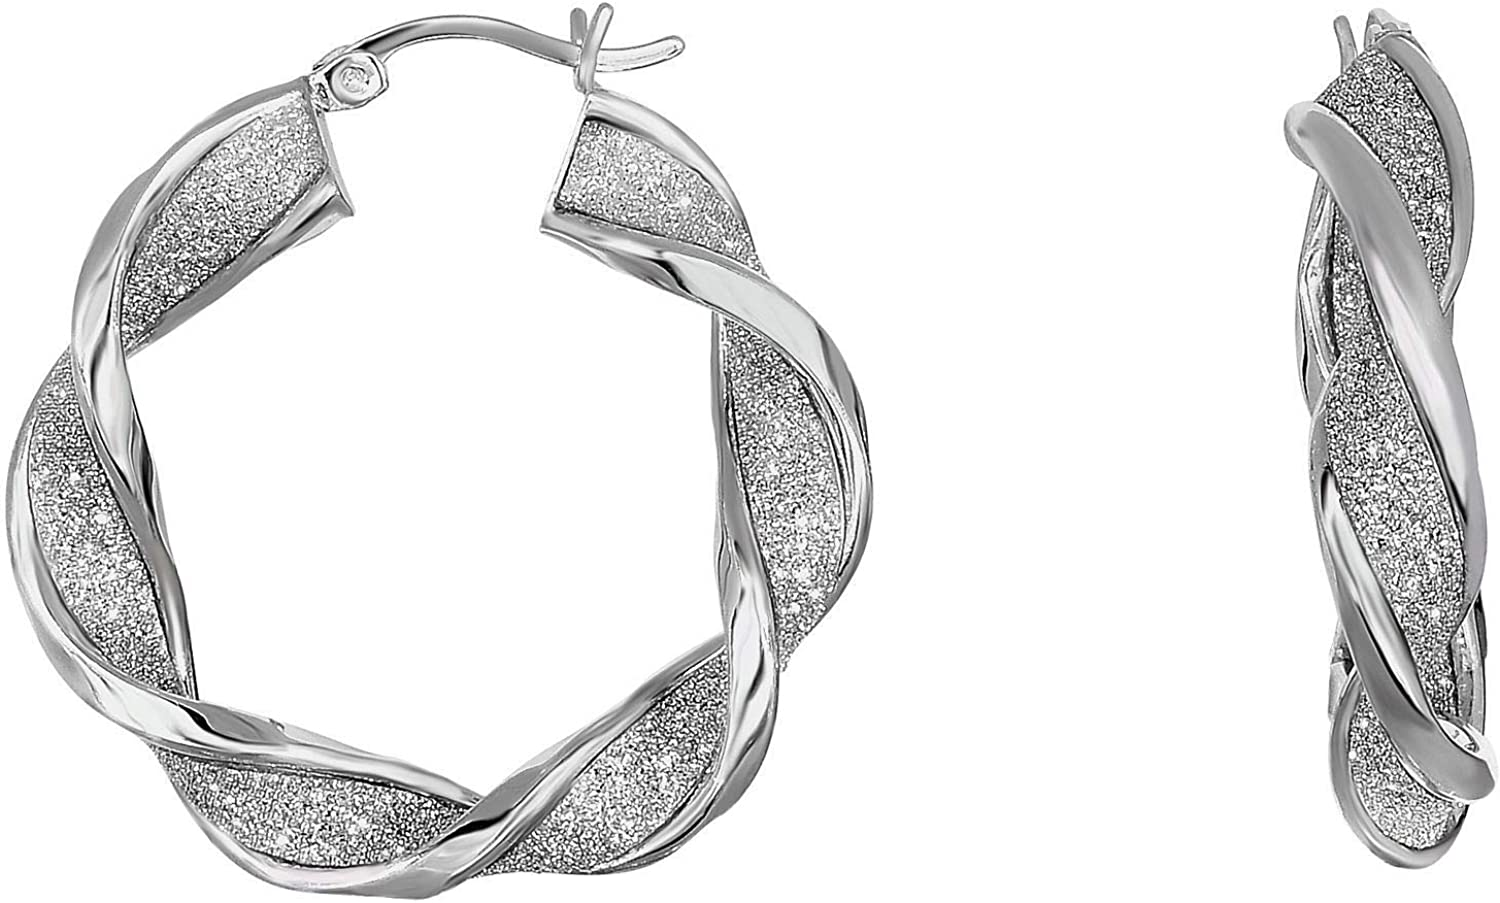 Cheap sale Silver Online limited product with Rhodium Finish 6X32mm Wreath Shiny+Diamond Type Cut